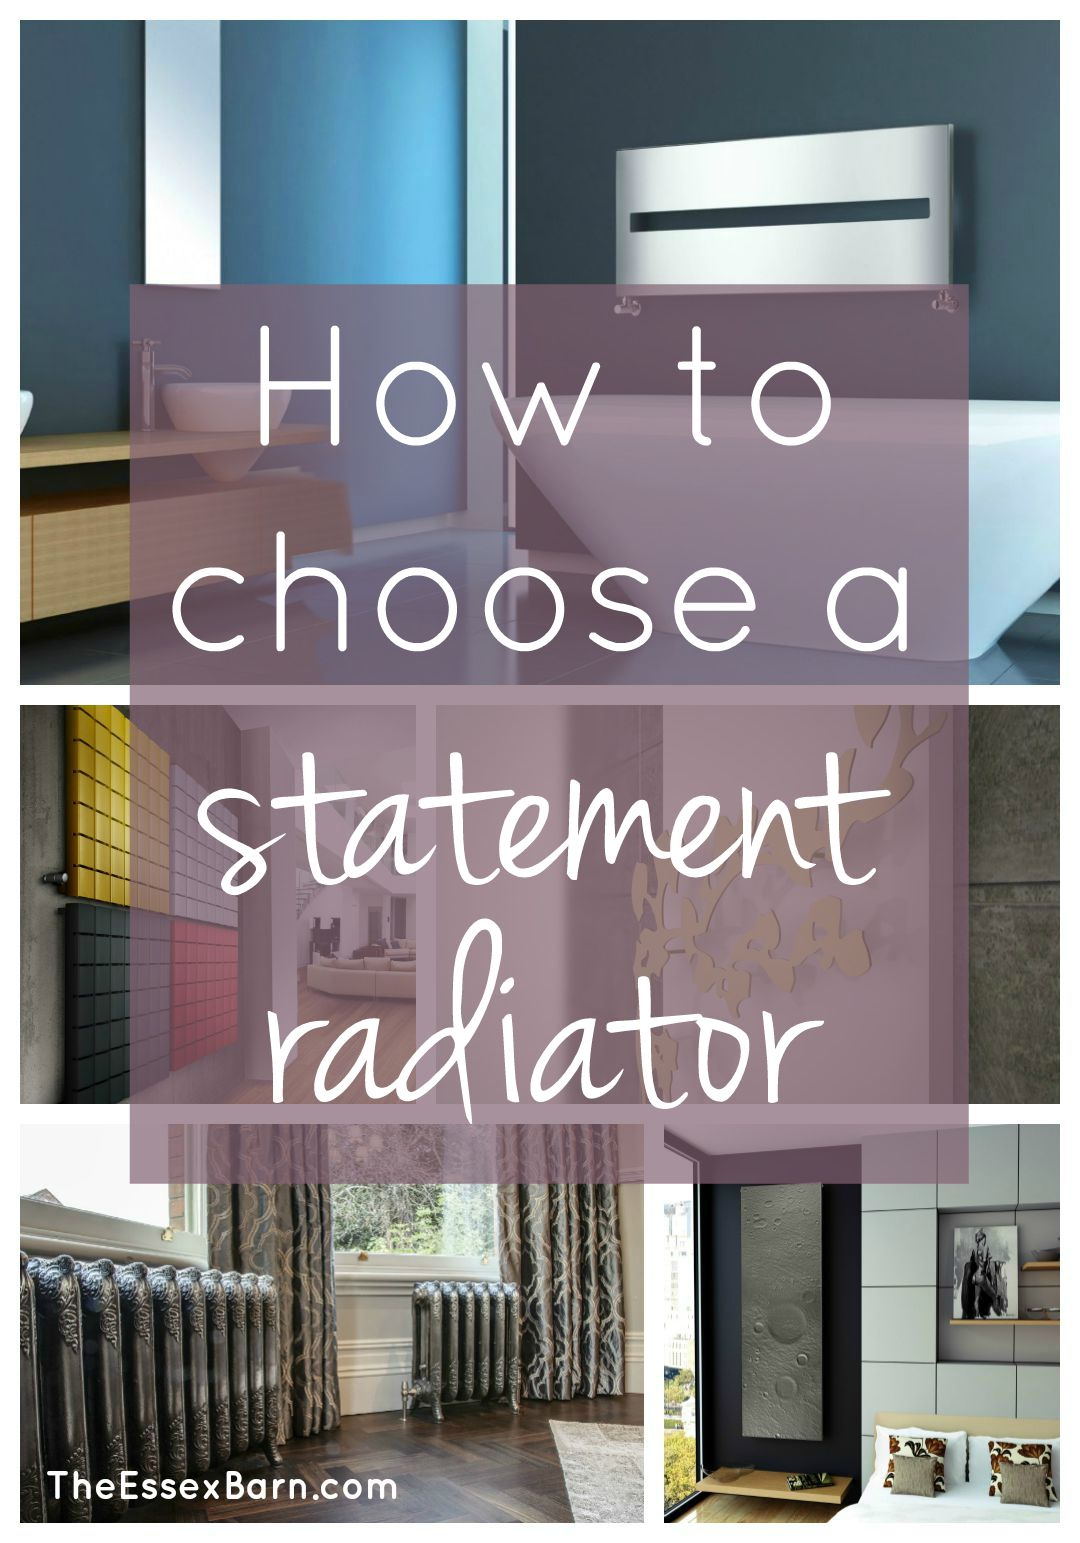 How to choose a statement radiator - TheEssexBarn.com